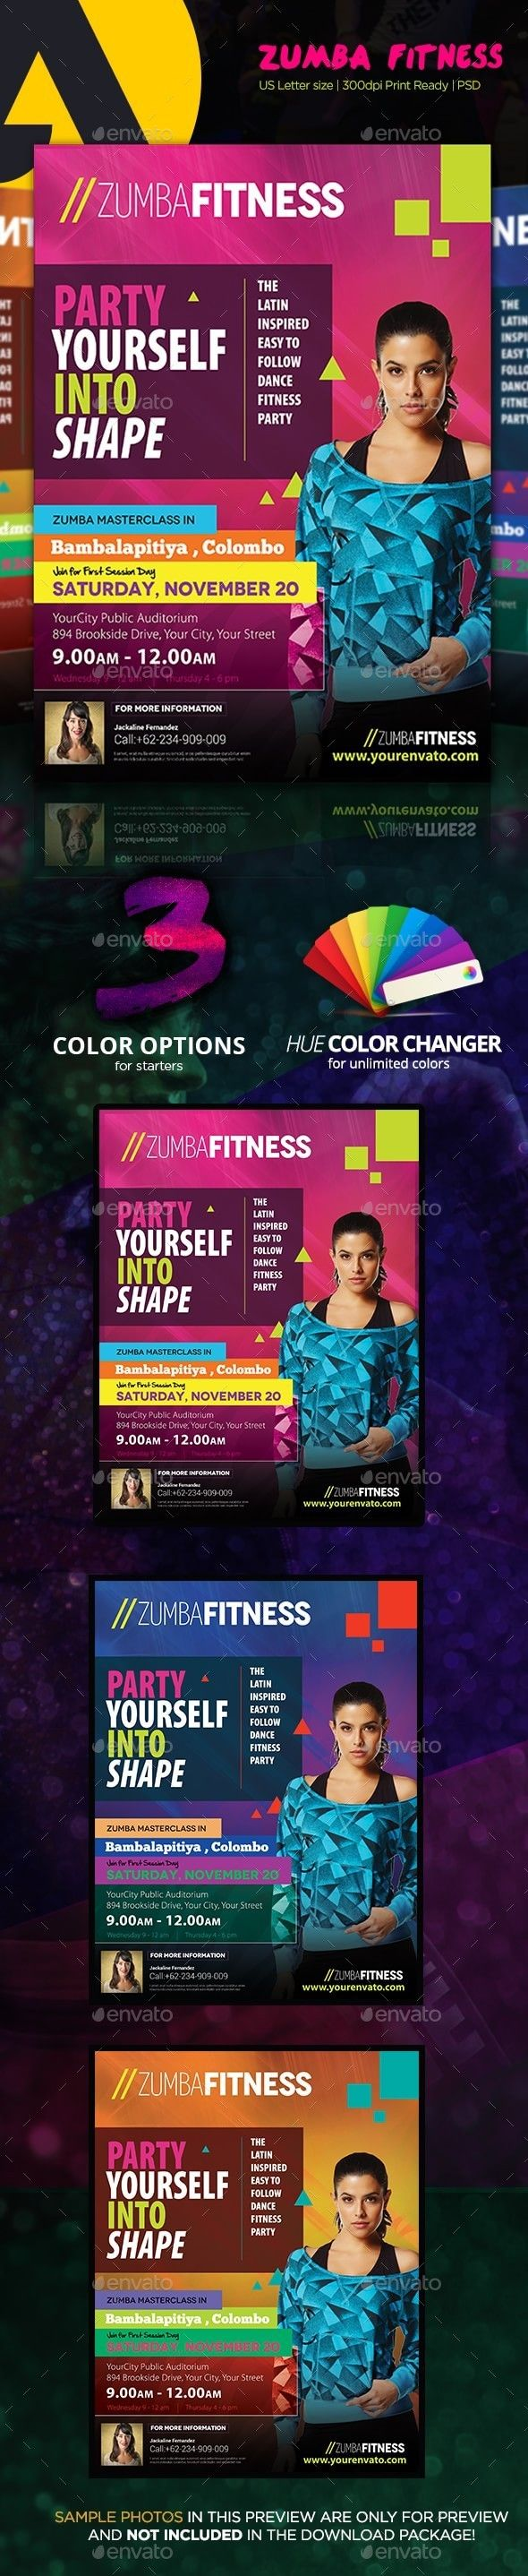 Zumba Fitness Flyer  Zumba Fitness Photoshop And Event Flyers